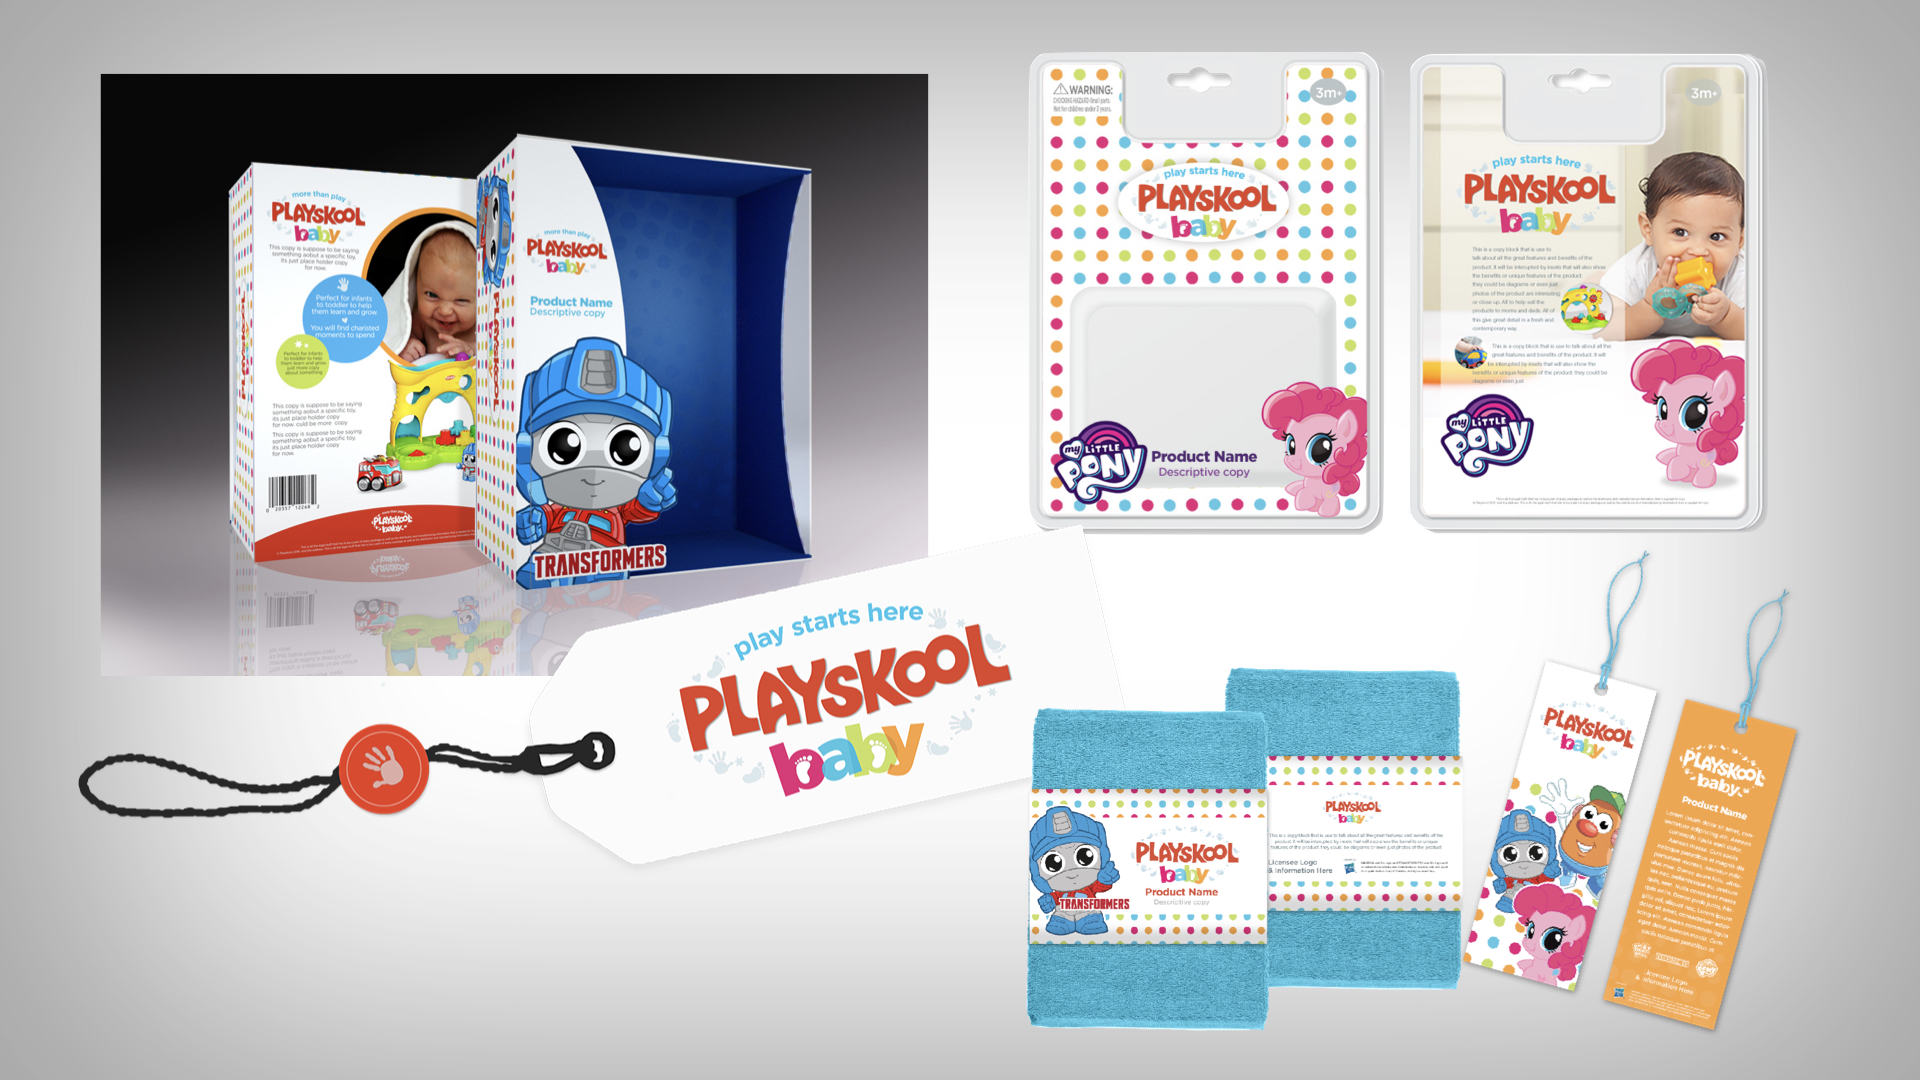 The Equinox Group worked with our friends at Hasbro to develop a baby brand extension to Playskool. The products launched in the UK in 2018.